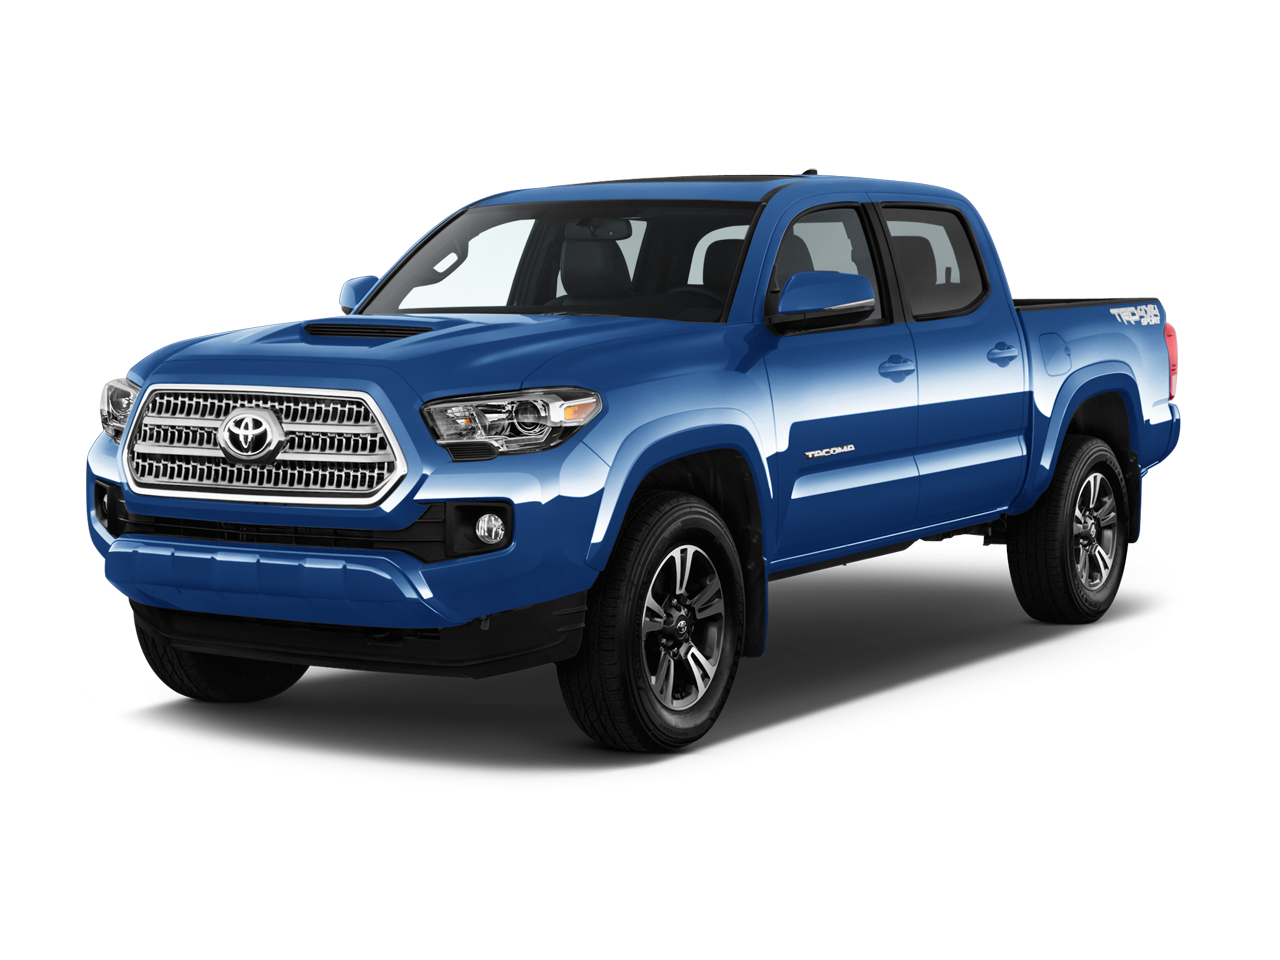 new 2017 toyota tacoma trd sport v6 double cab near oak lawn il oak lawn toyota. Black Bedroom Furniture Sets. Home Design Ideas